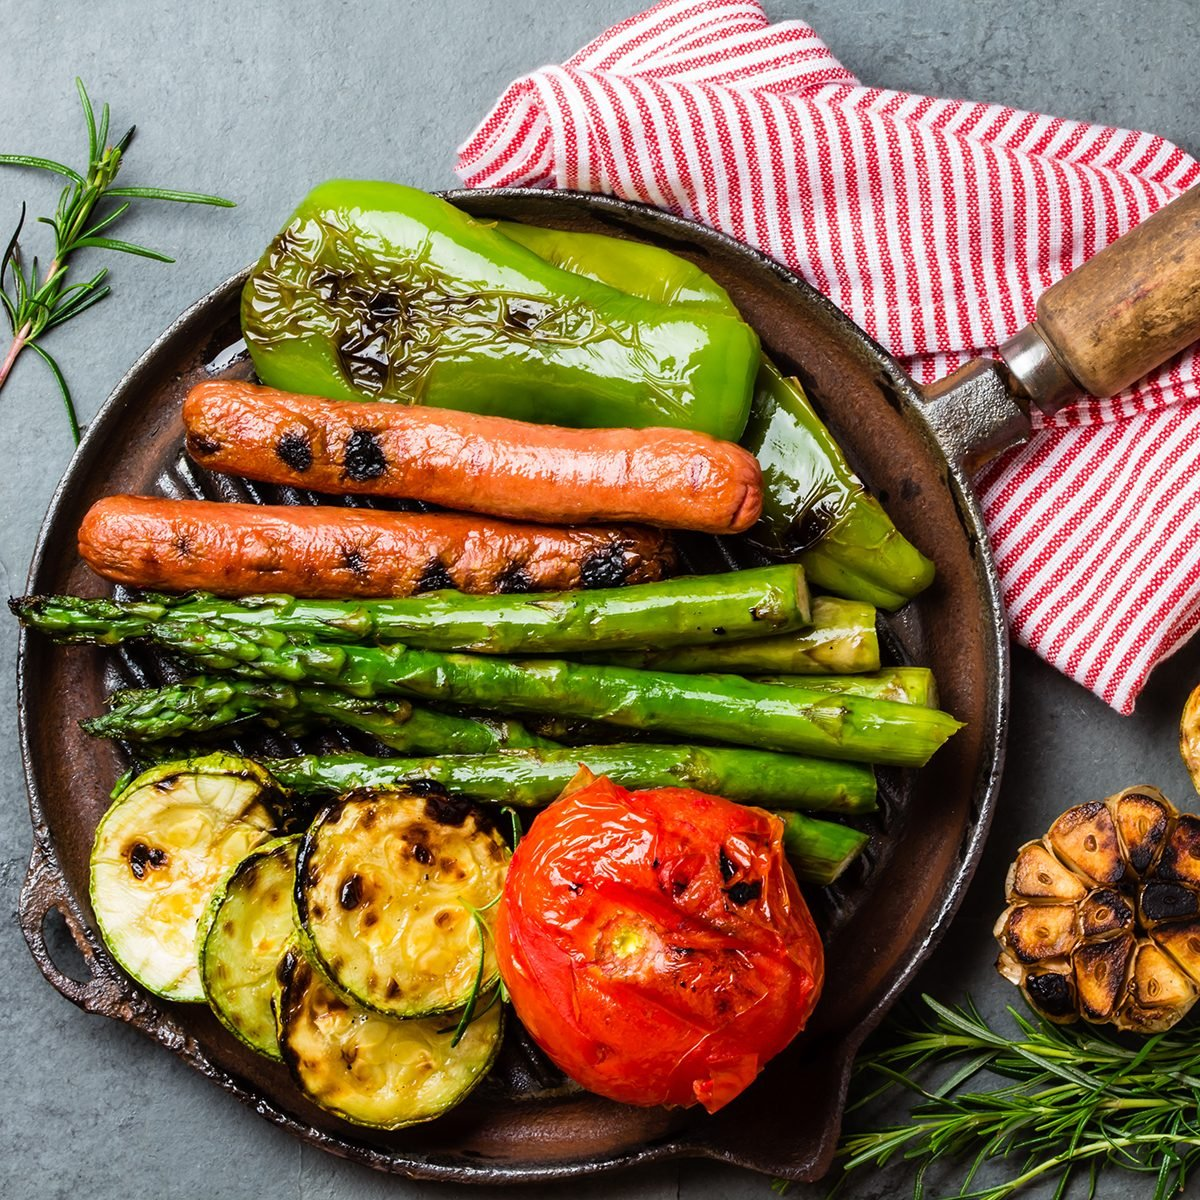 Grilled sausages and green vegetables - zucchini, asparagus, bell pepper, garlic, lemon and rosemary on cast iron grill pan.